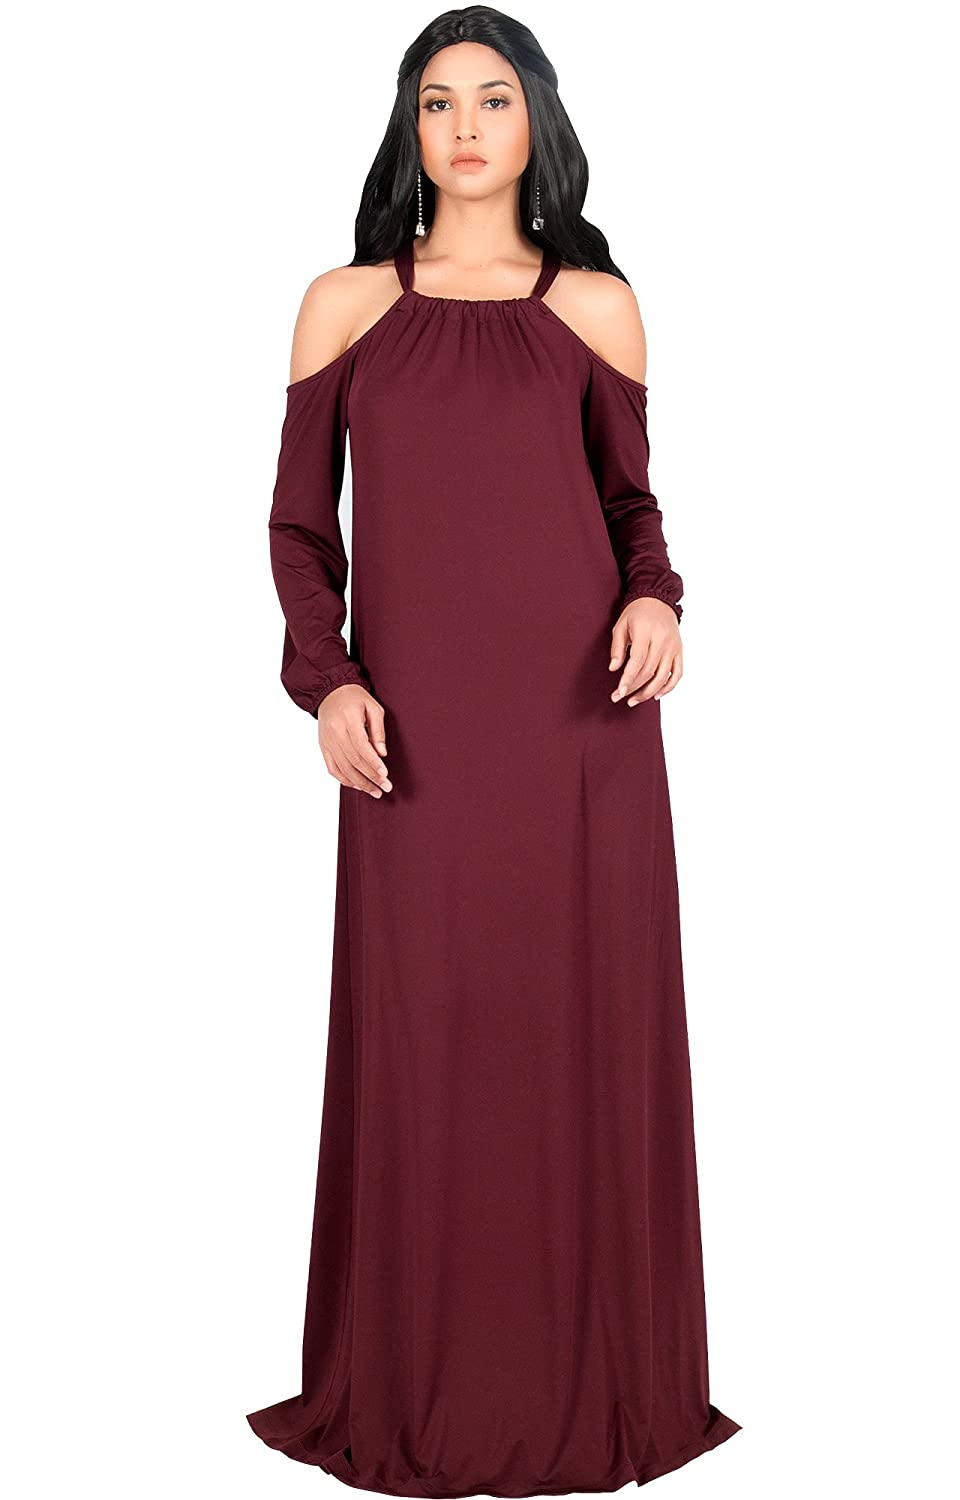 8d0aecd5bc PLUS SIZE - This great maxi dress design is also available in plus sizes.  STYLE - A sexy yet elegant maxi dress features long sleeves and a racer back